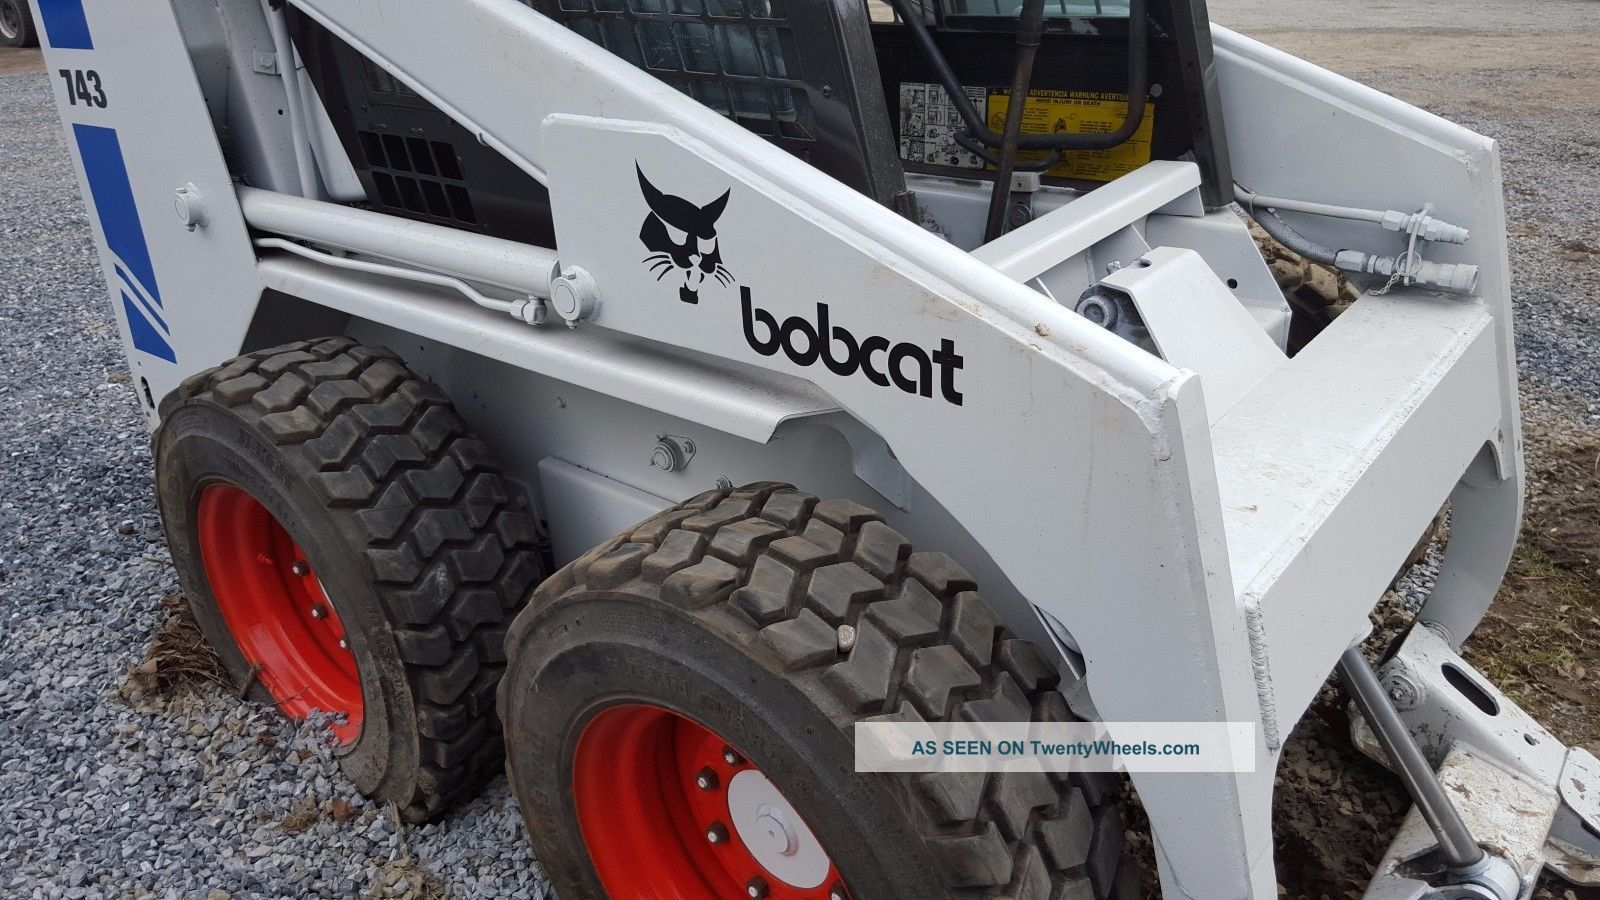 Bobcat Skid Steer Paint : Bobcat skidsteer erop heat tires paint